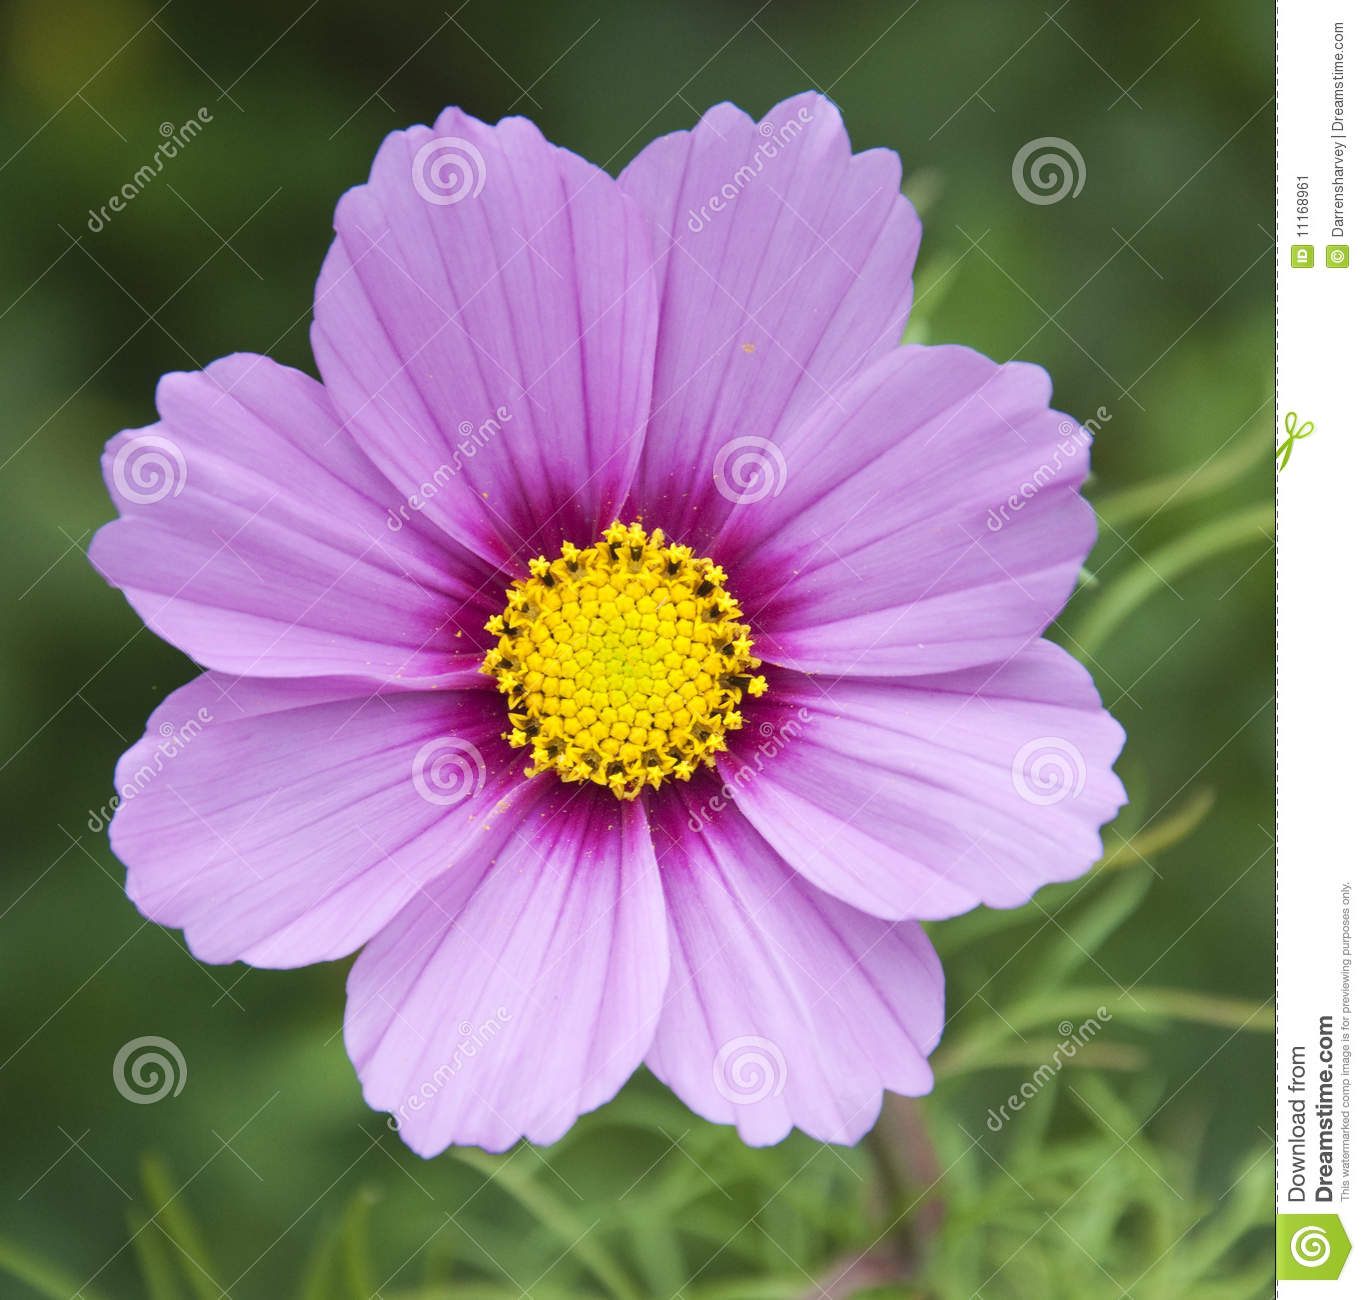 Pink and purple flower stock image image of meadow english 11168961 pink and purple flower mightylinksfo Choice Image